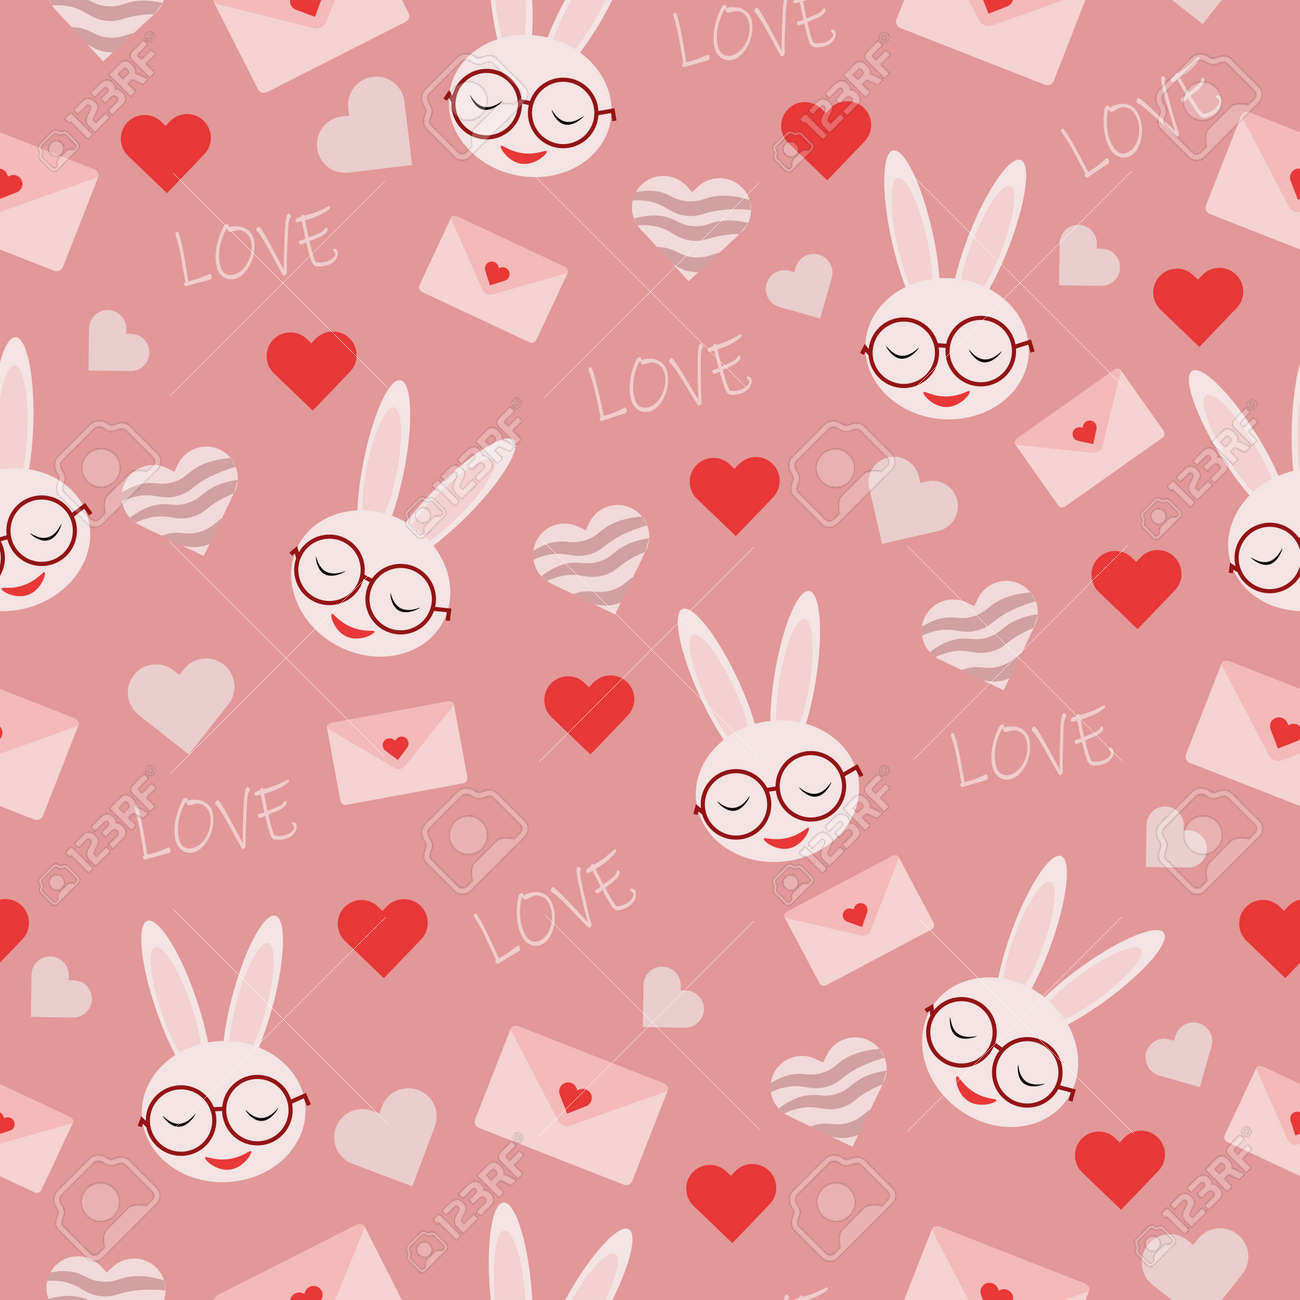 seamless vector pattern with heart shapes pink envelope with rabbit in glasses and inscription love for valentines day holiday - 163505598